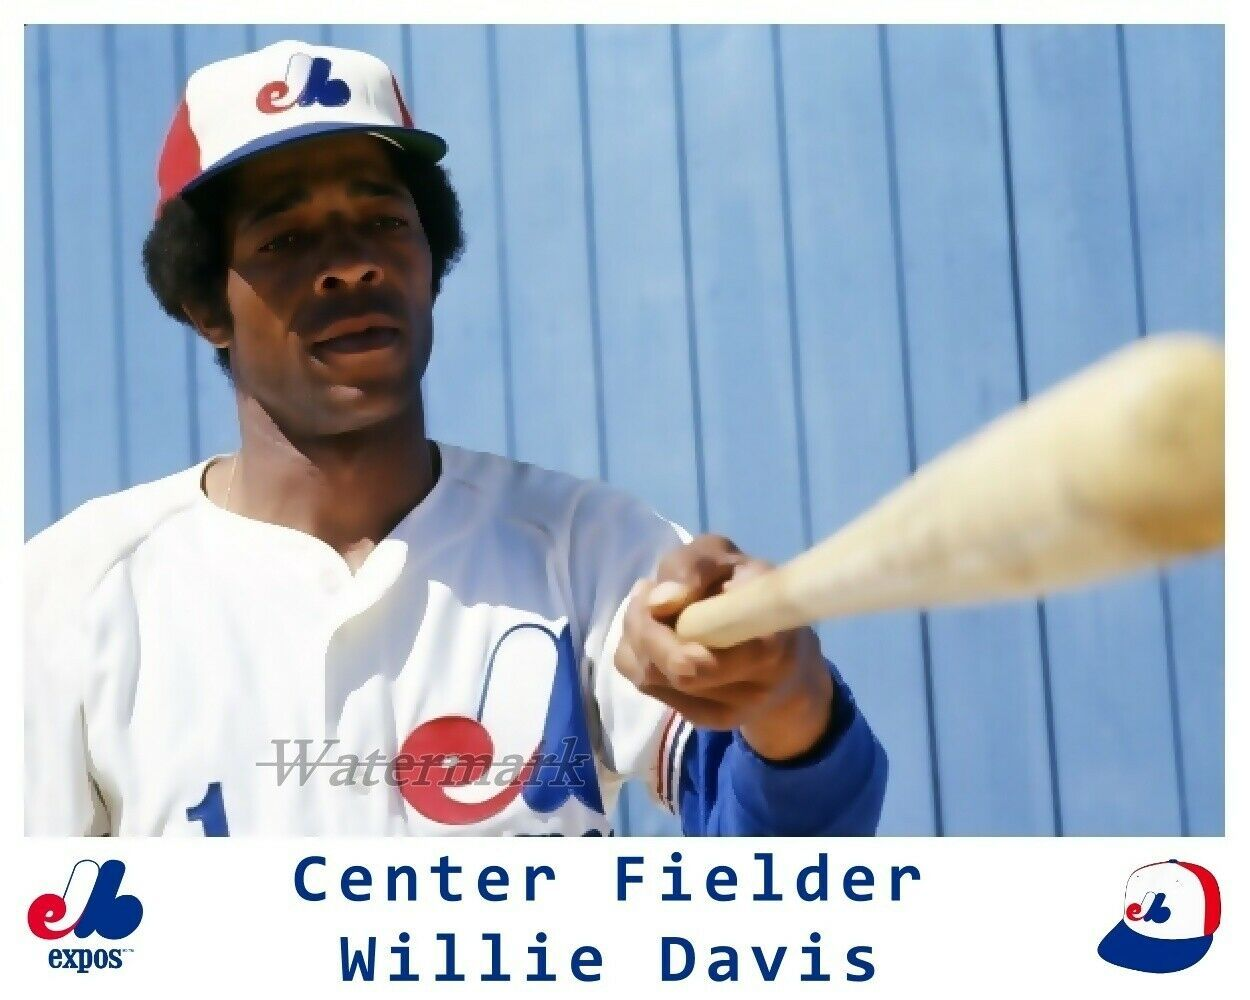 MLB 1974 Willie Davis Montreal Expos Color 8 X 10 Photo Picture  - $5.99